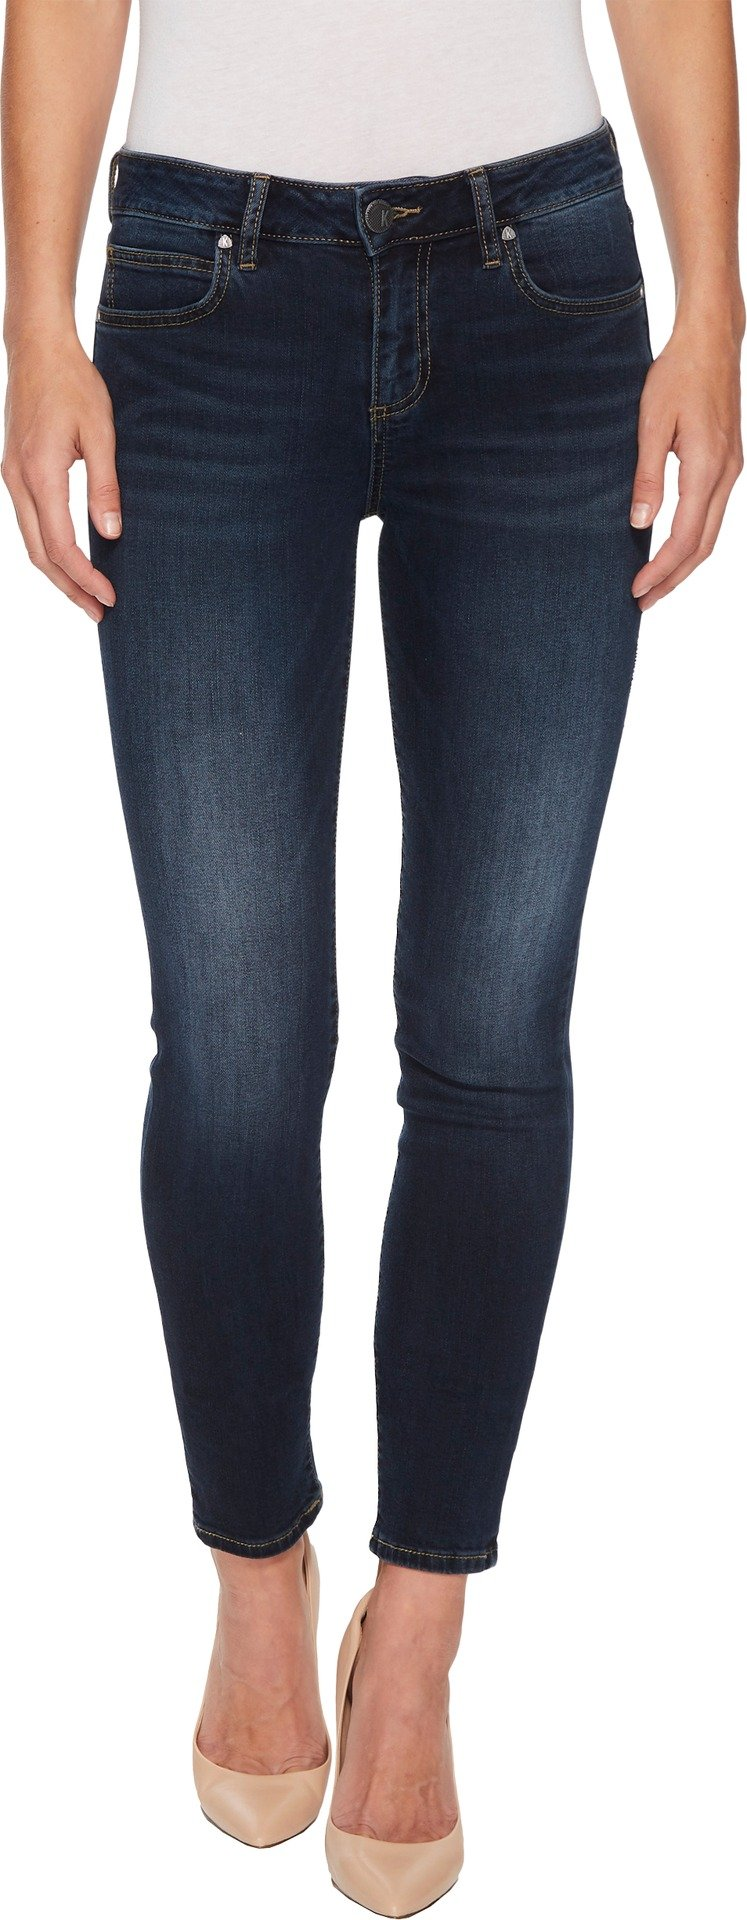 KUT from the Kloth Women's Diana Kurvy Skinny In Likable Likable/Dark Stone Base Wash 8